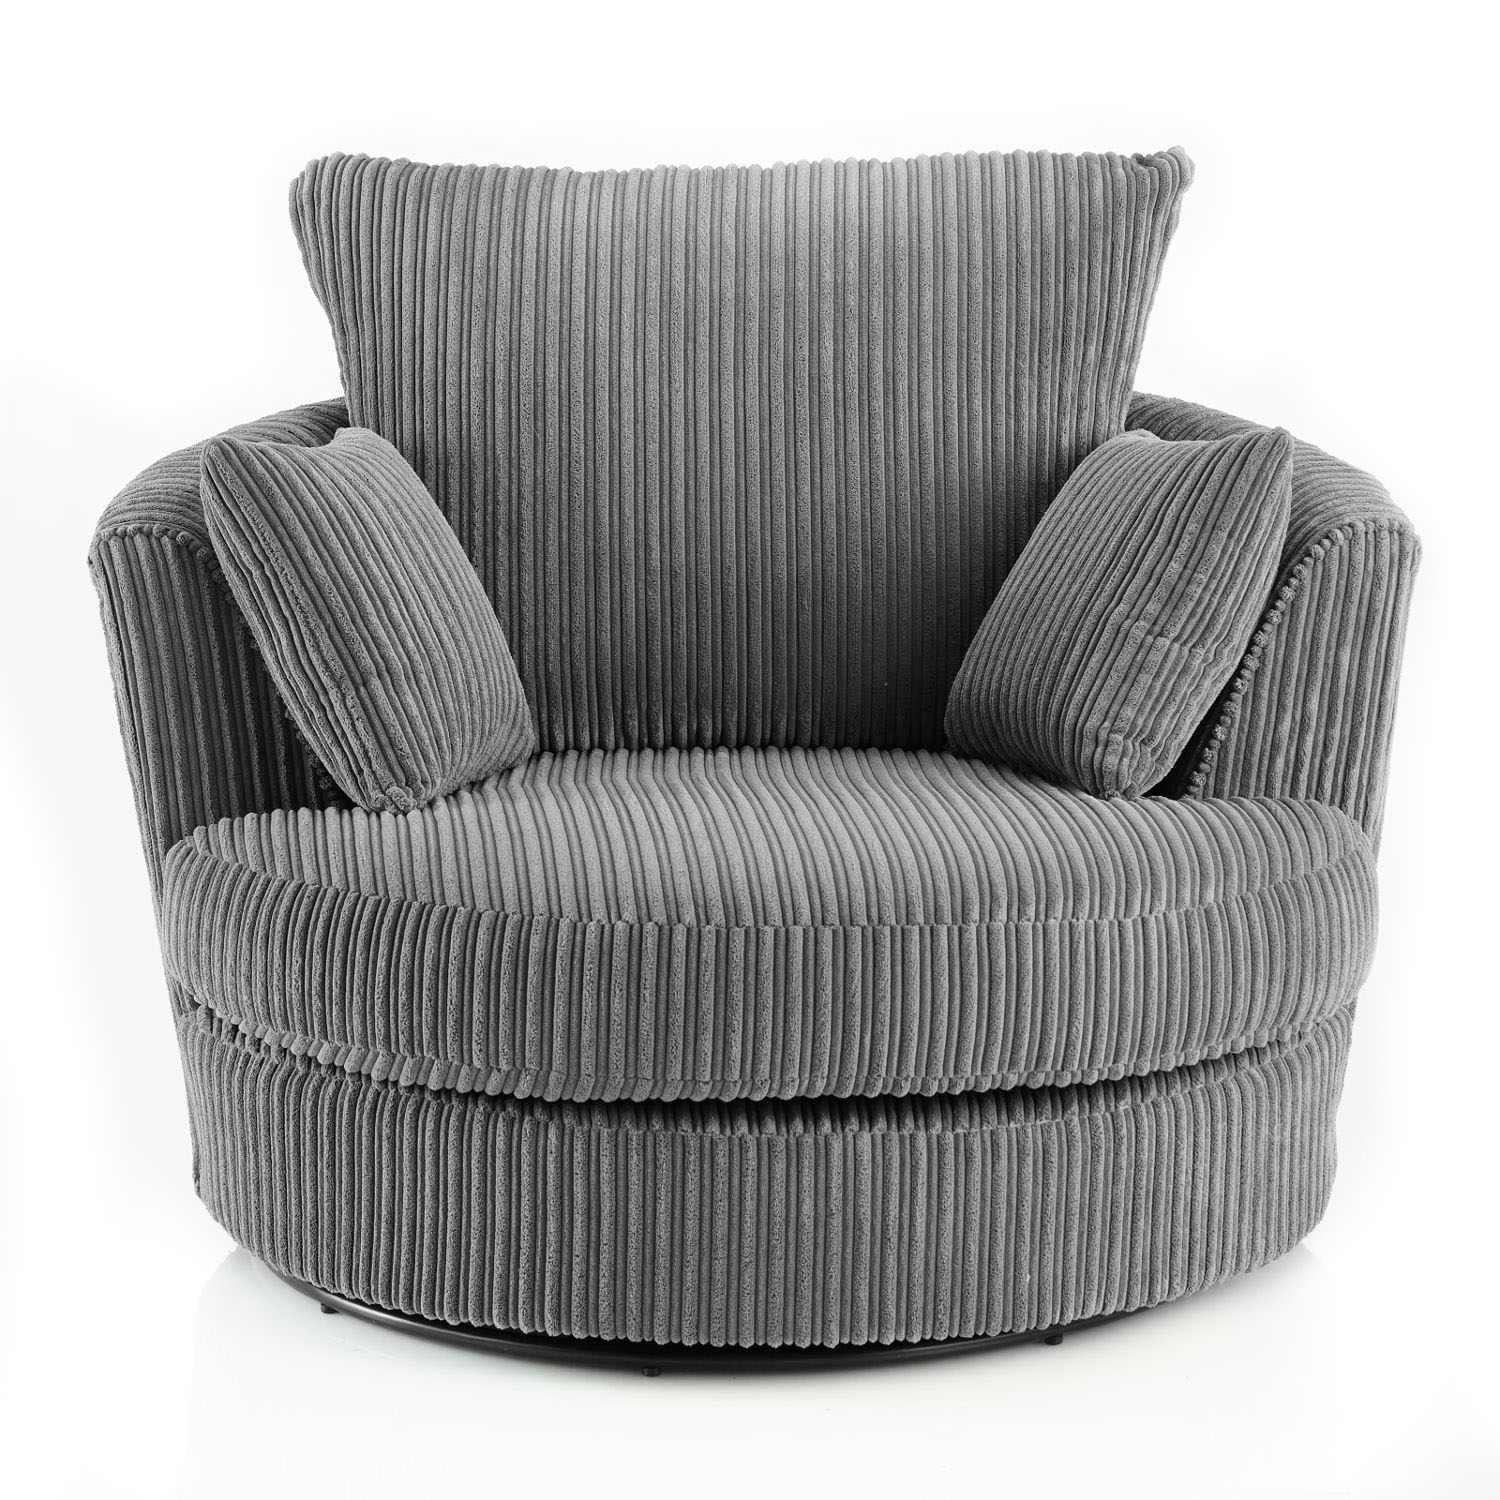 Miranda Swivel Cuddle Chair Fabric Leather Armchair Jumbo Cord Grey Pertaining To Grey Swivel Chairs (View 13 of 20)